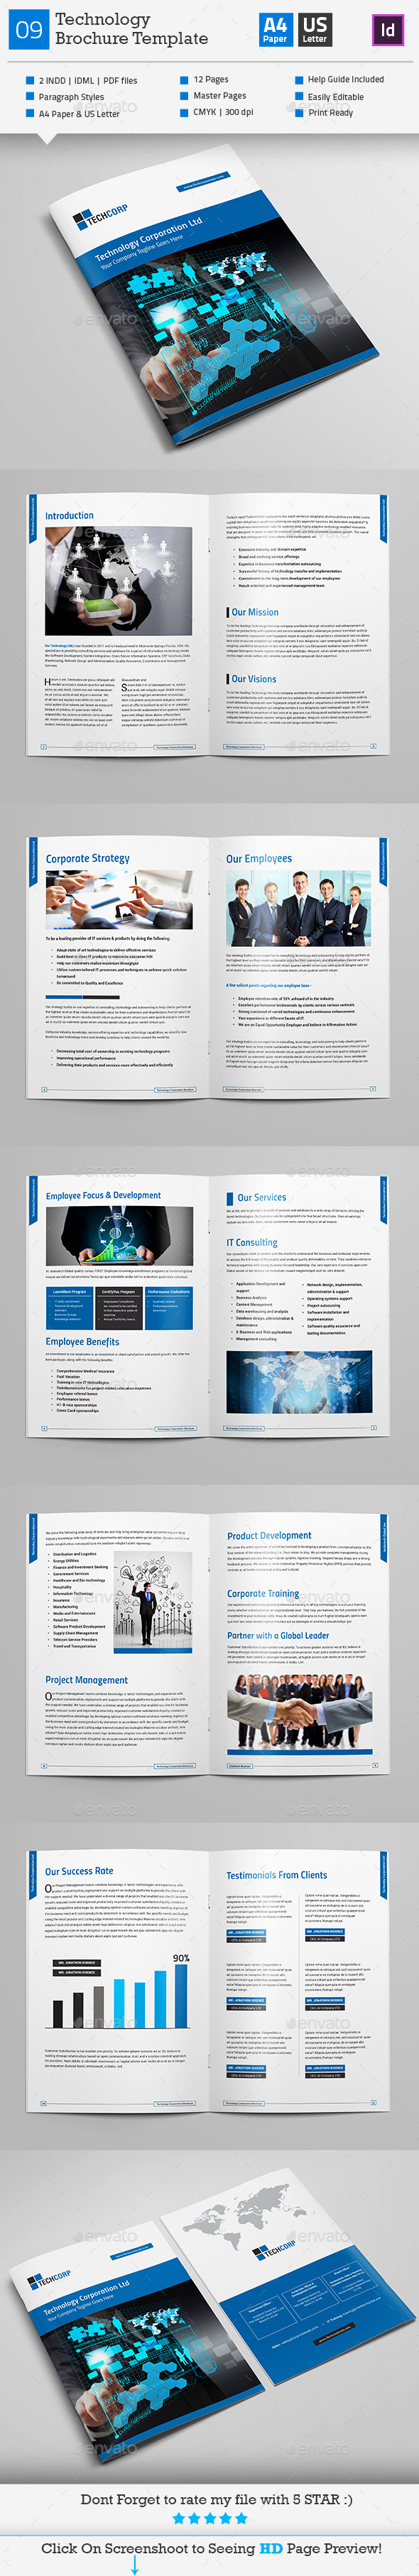 GraphicRiver Technology Brochure Template V9 10980664